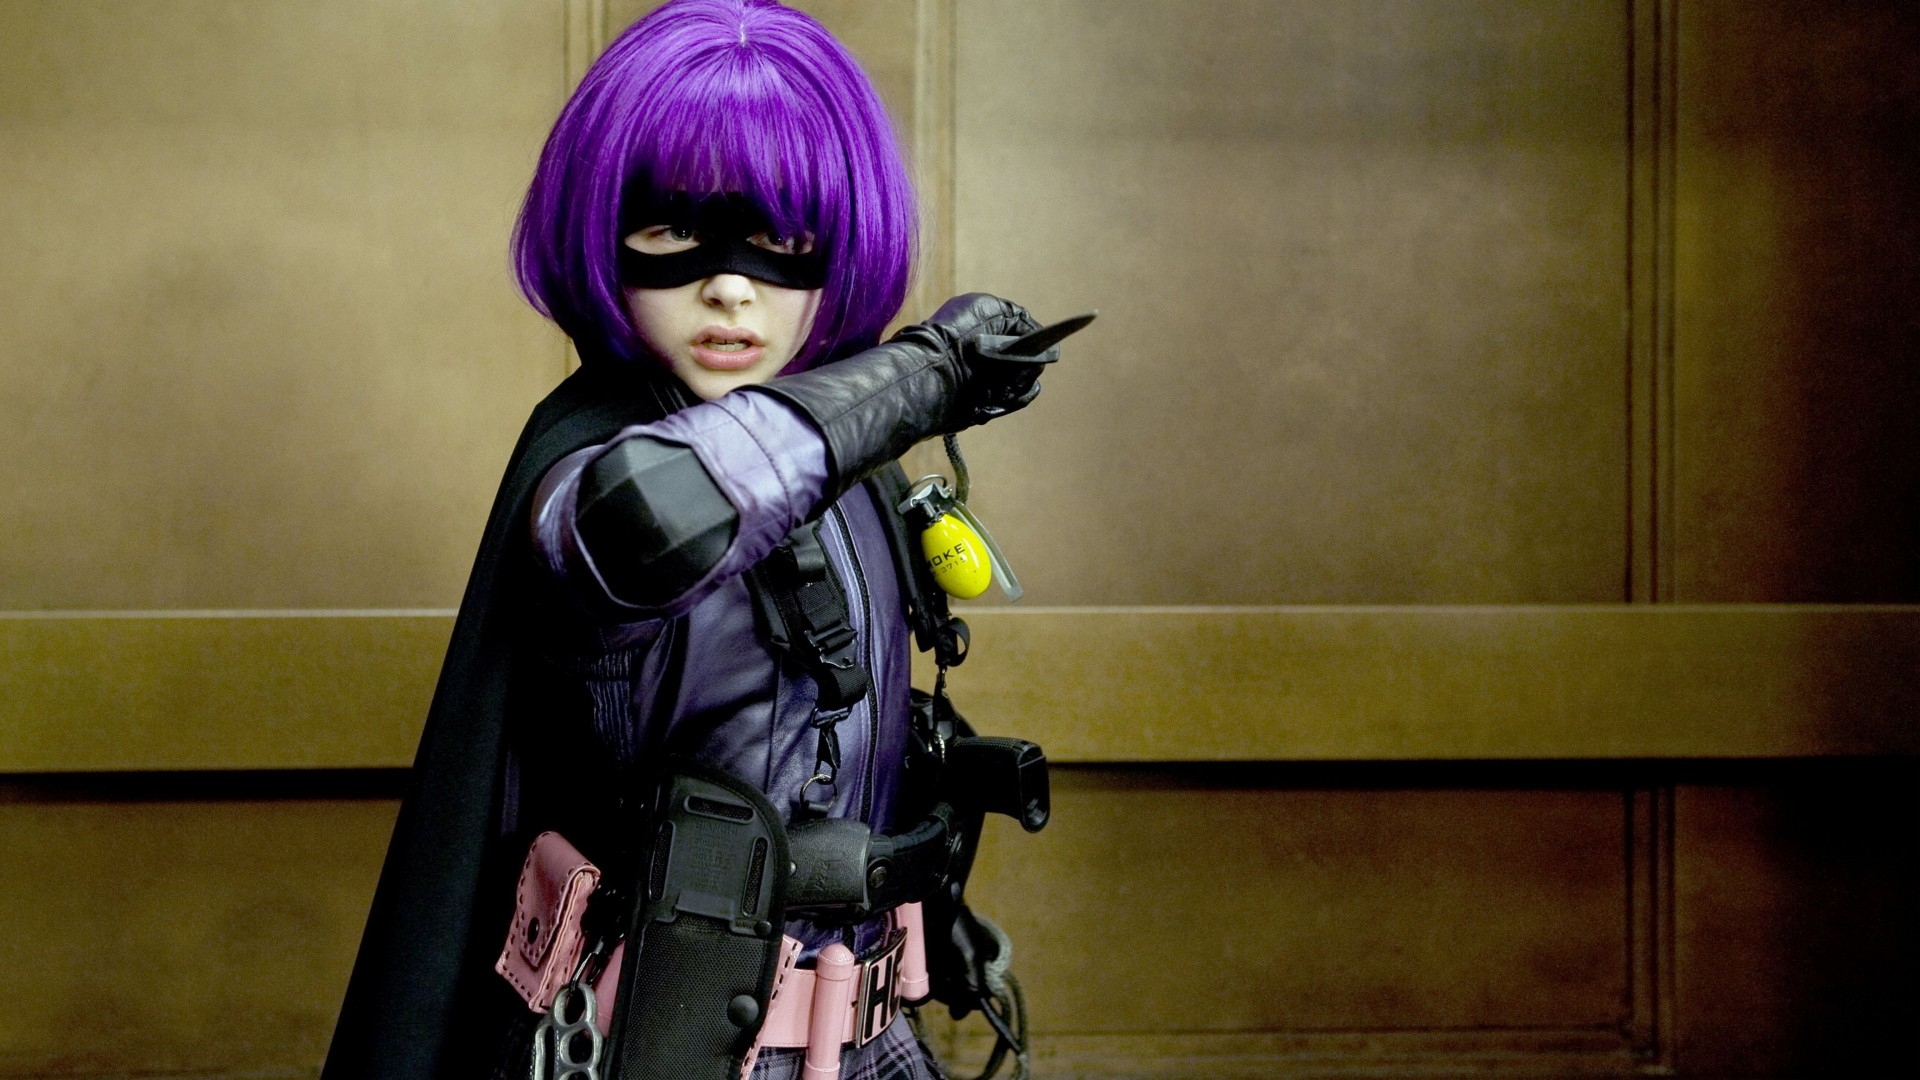 Chloe Moretz Kick Ass Hit Girl HD Wallpaper